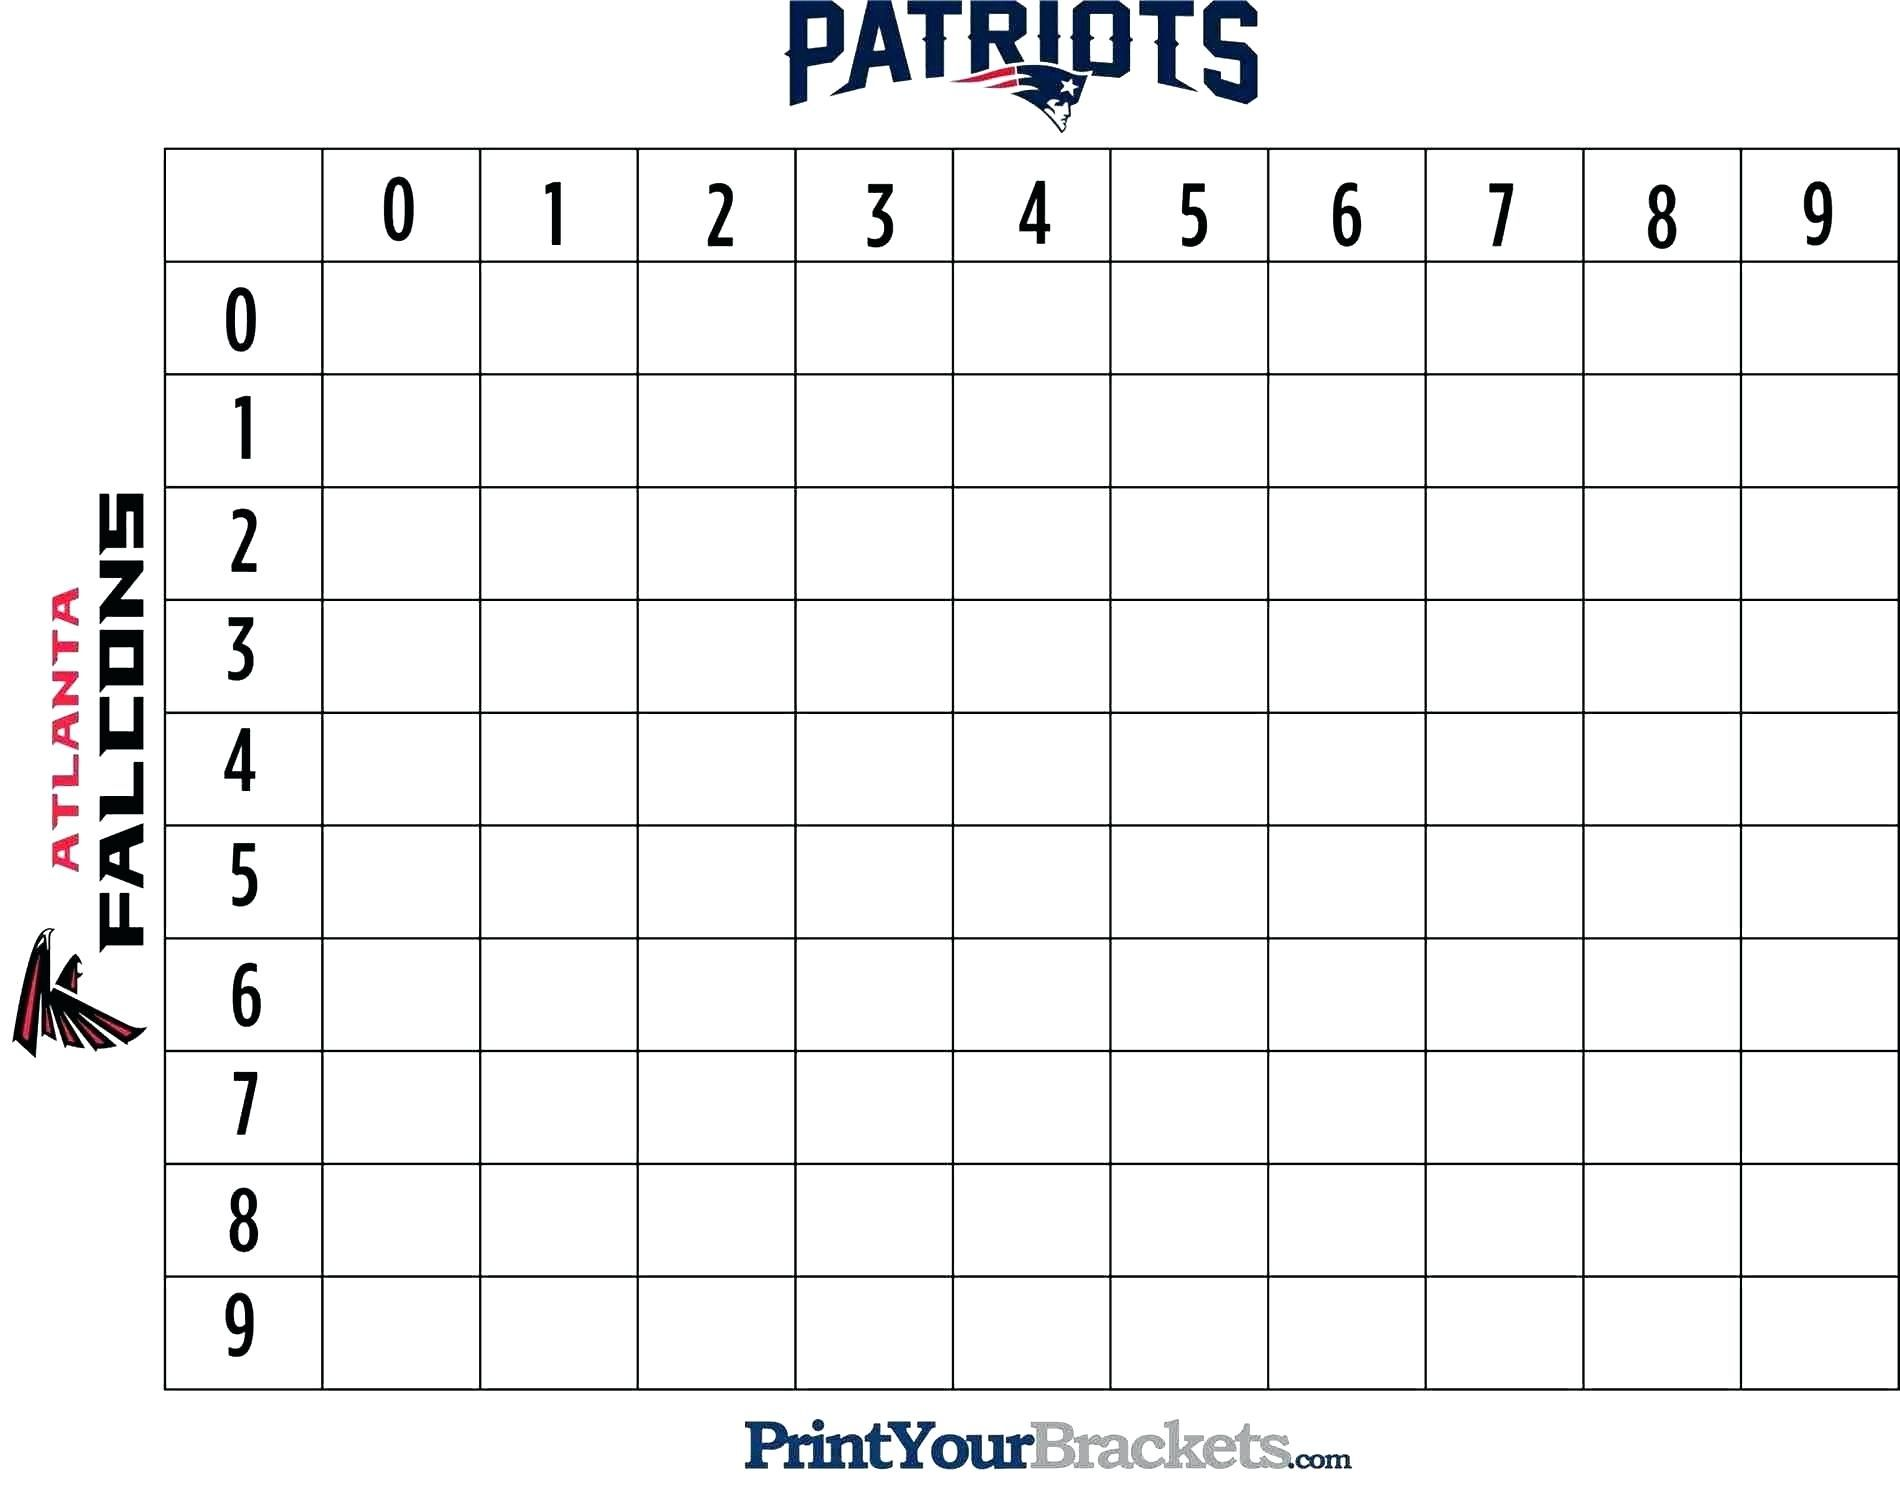 Football Stats Sheet Template Uppage Co In Blank Football Depth Chart Template In 2020 With Images Depth Chart Reward Chart Template Cleaning Schedule Templates